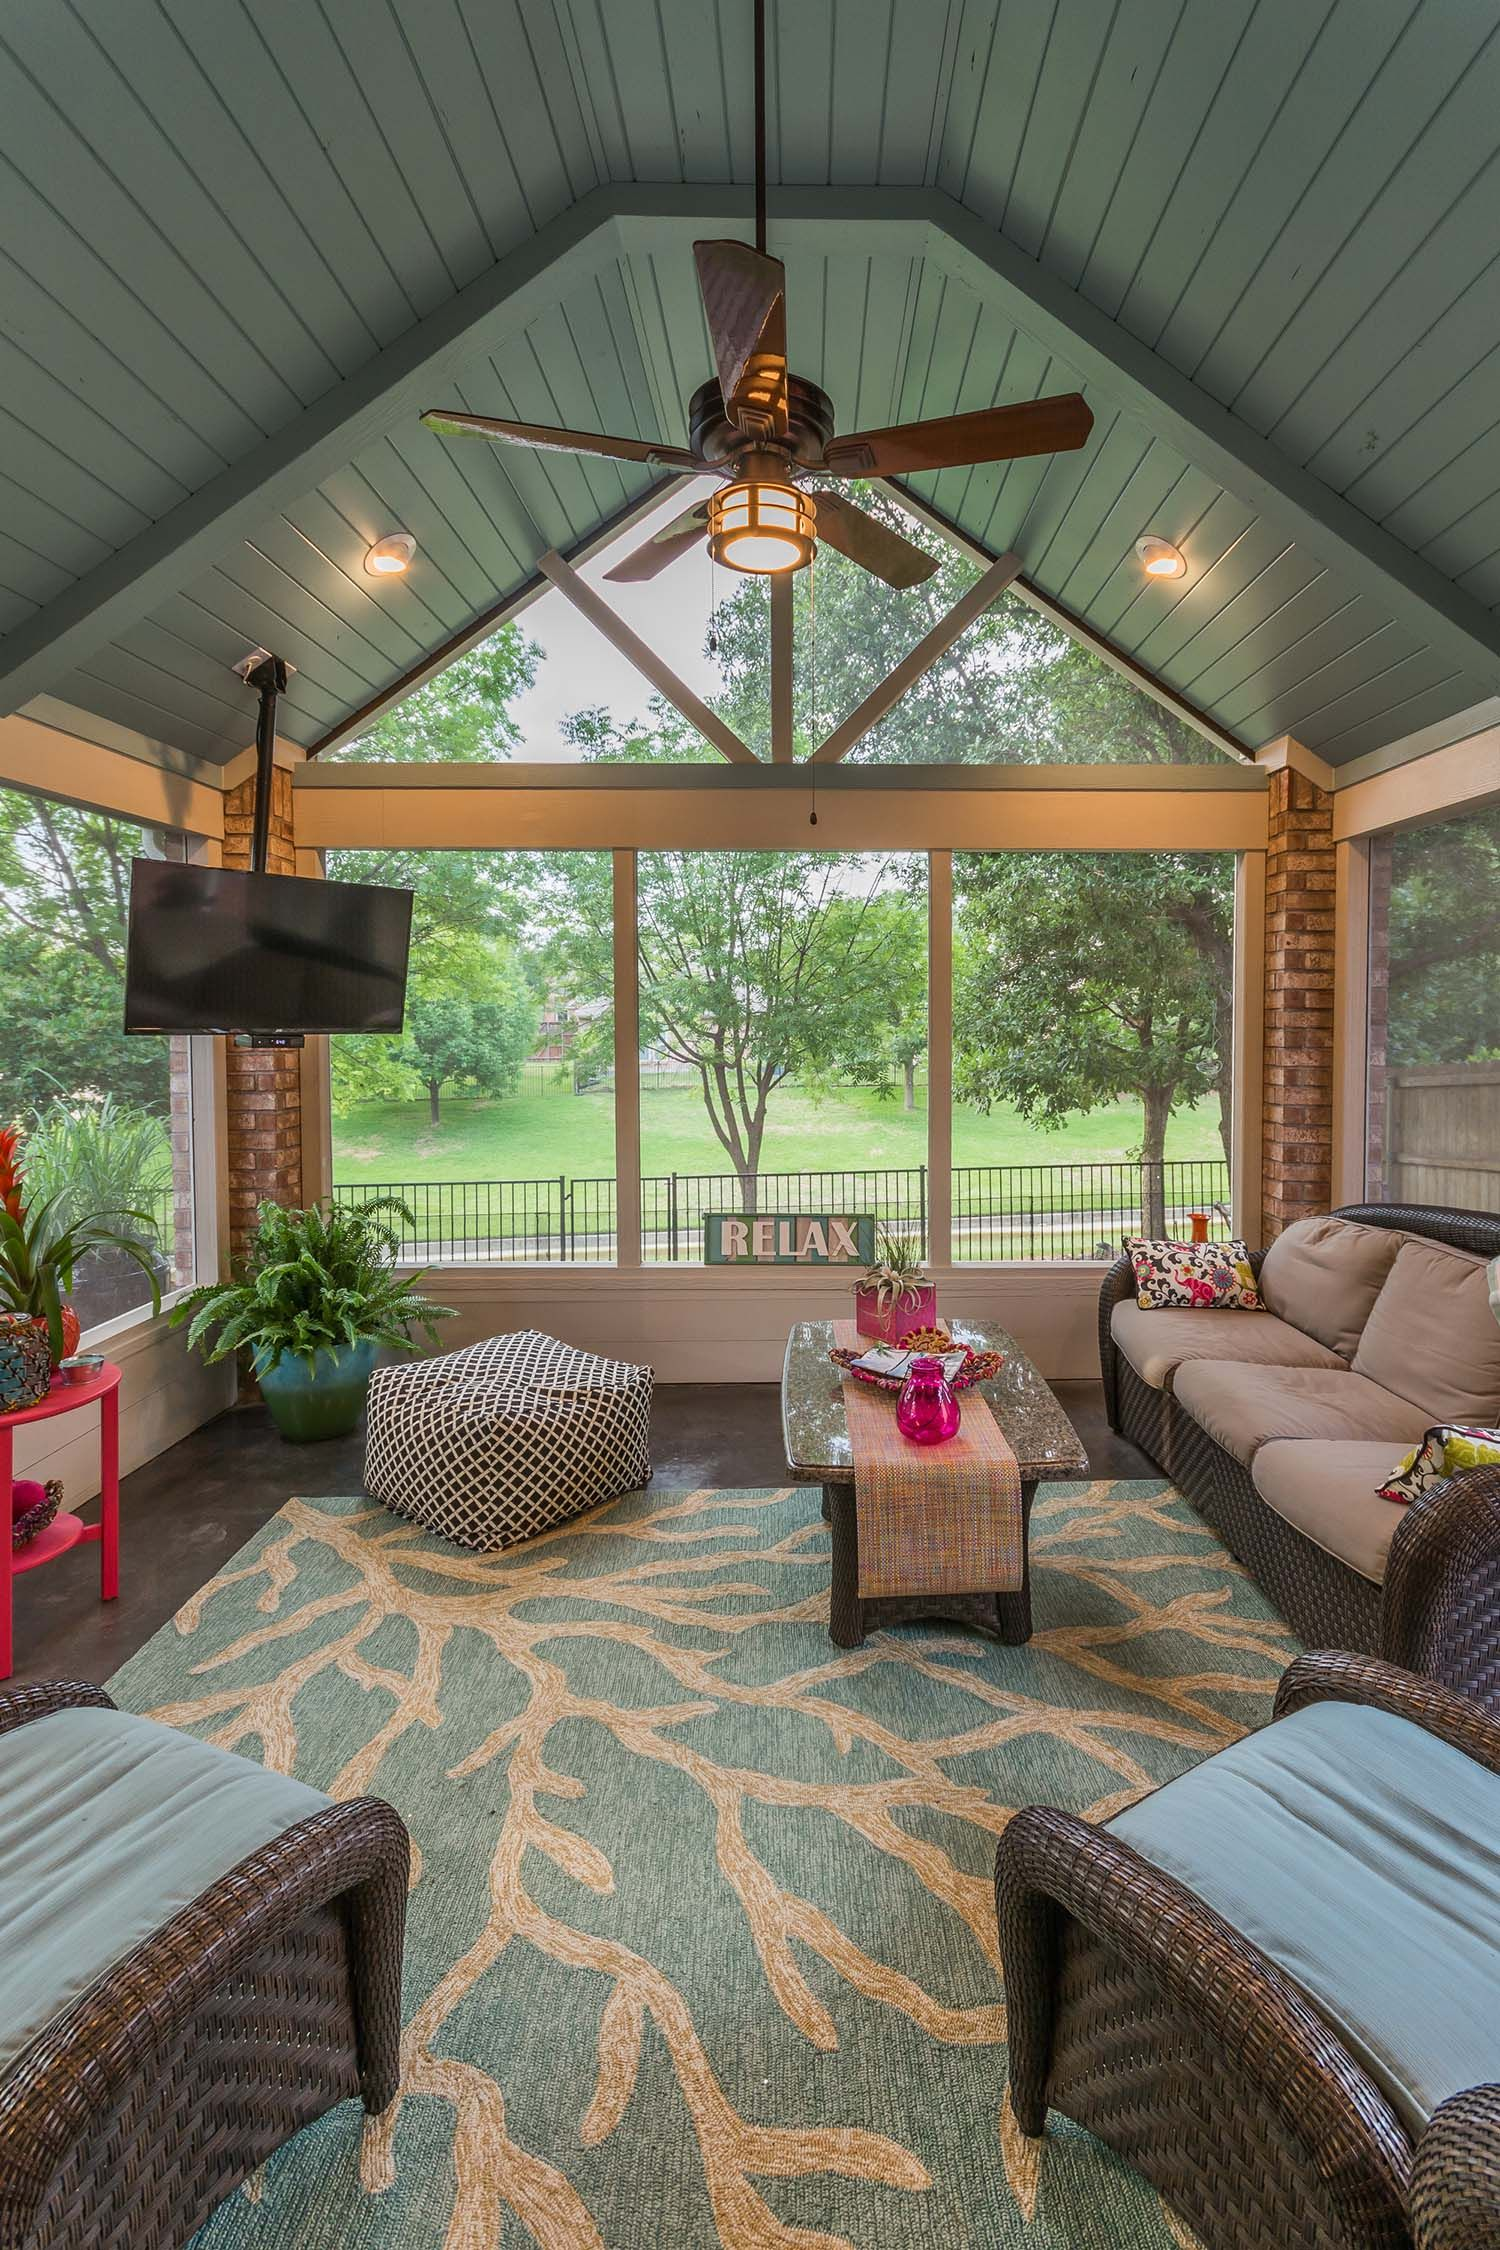 38 amazingly cozy and relaxing screened porch design ideas - Screened In Porch Design Ideas